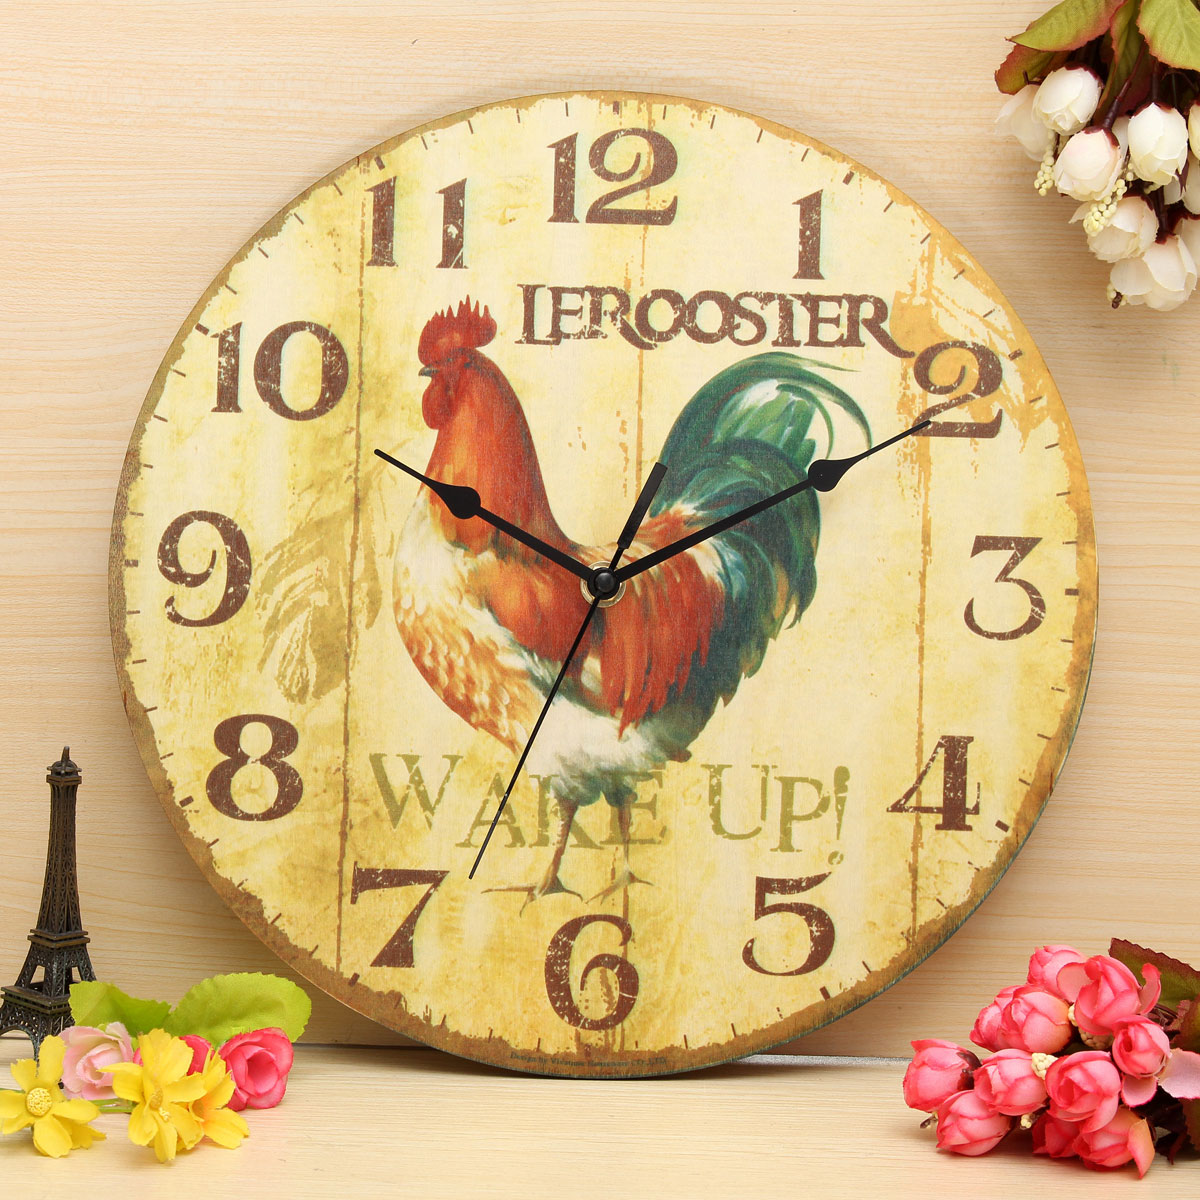 Vintage Wall Clock Retro Zakka Rustic Art Shabby Wooden Clock Home Office Cafe Bar Wall Decoration 30cm